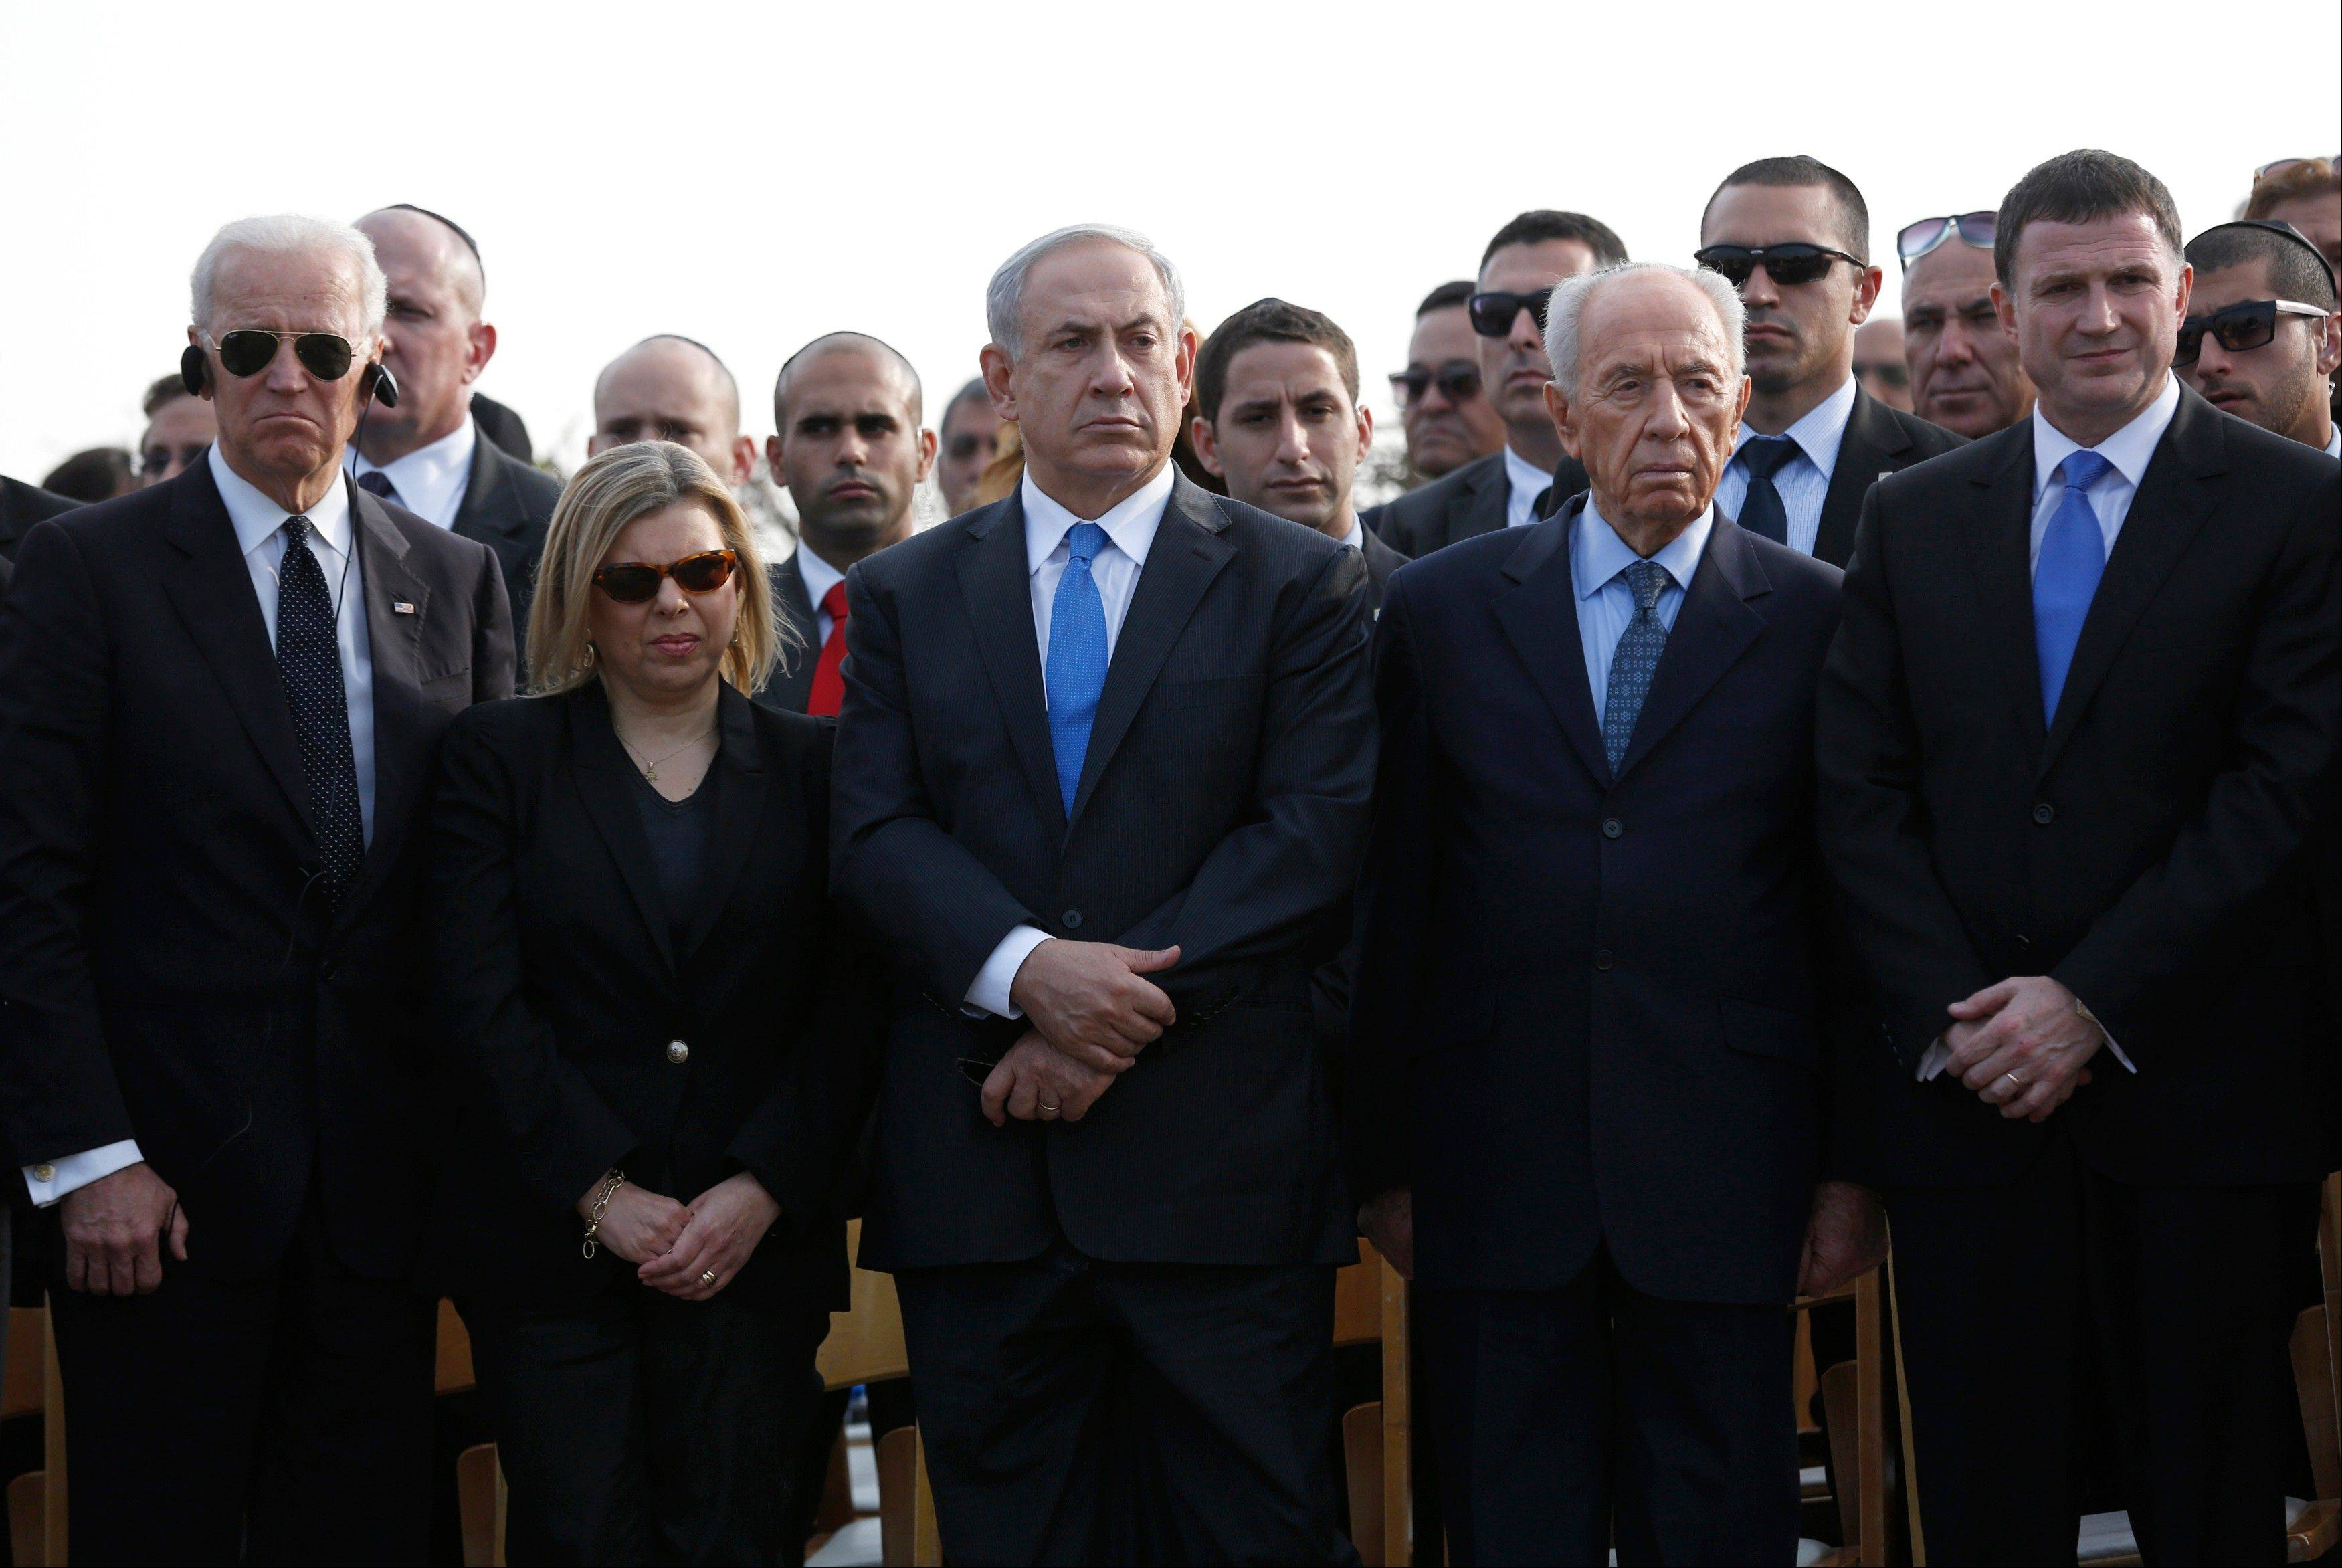 From right to left: Yuli Edelstein, speaker of Israel's parliament; Israel's President Shimon Peres; Prime Minister Benjamin Netanyahu and his wife, Sara; and U.S. Vice President Joe Biden attend the funeral of former Israeli Prime Minister Ariel Sharon in southern Israel Monday.